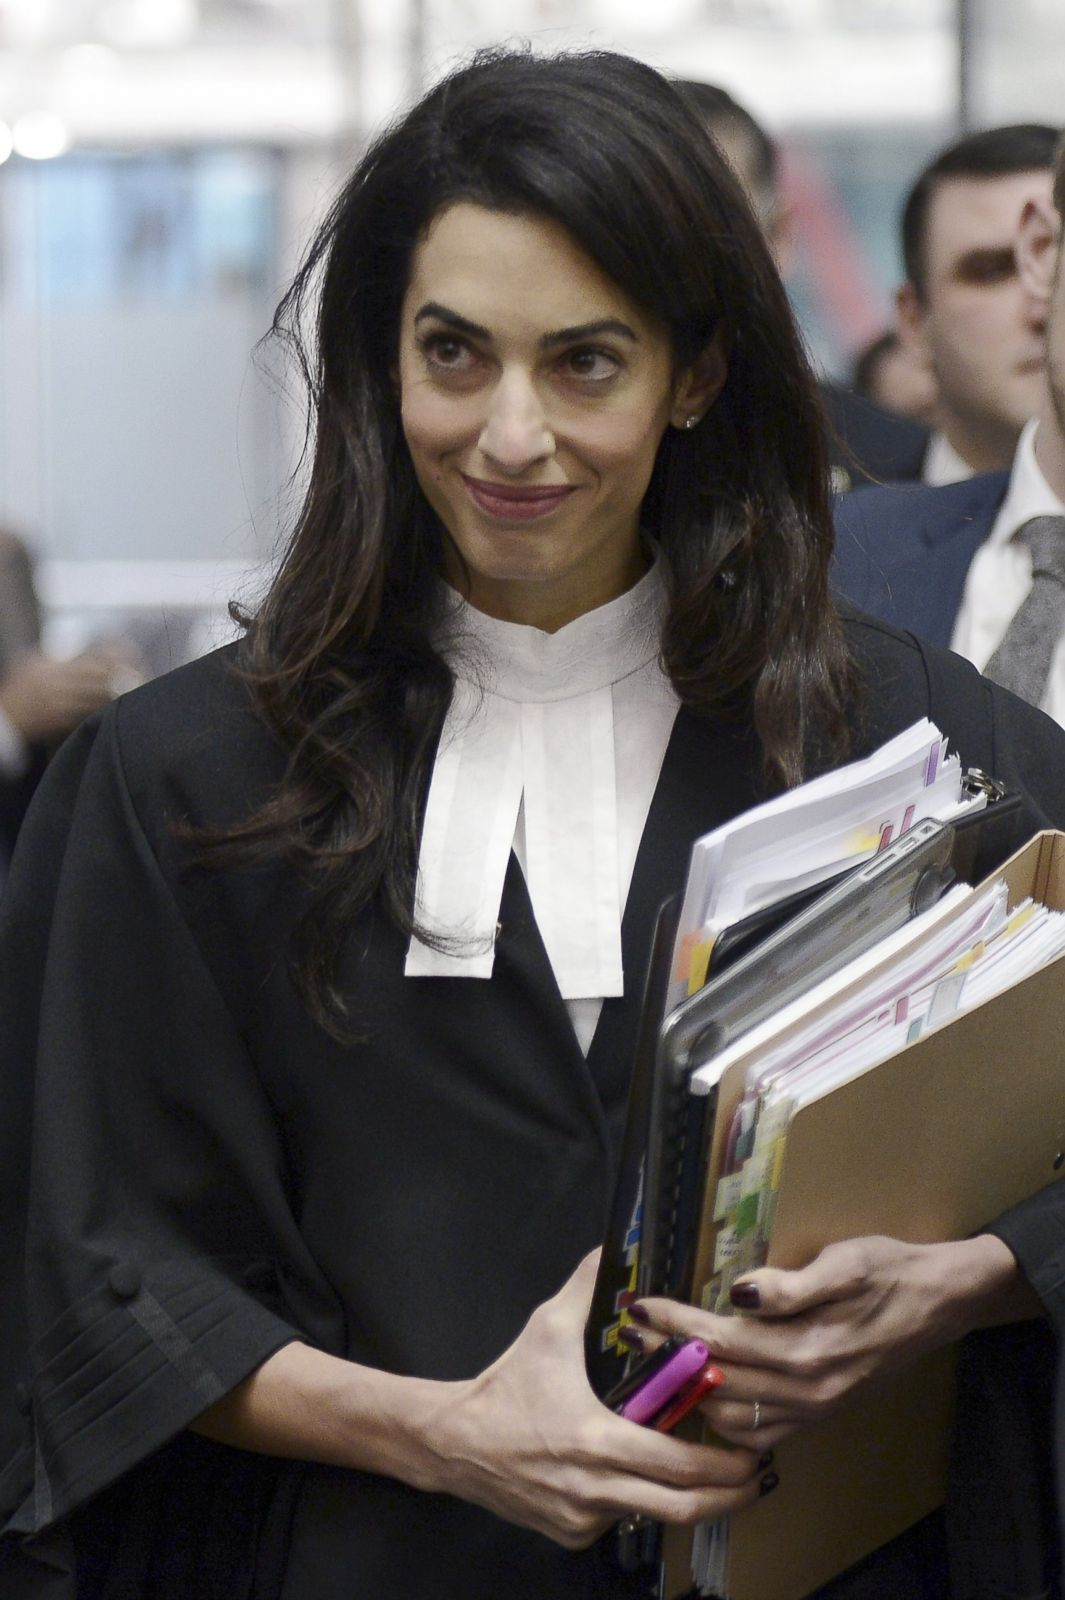 Amal Clooney Goes to Work In France Picture | All of Amal ...